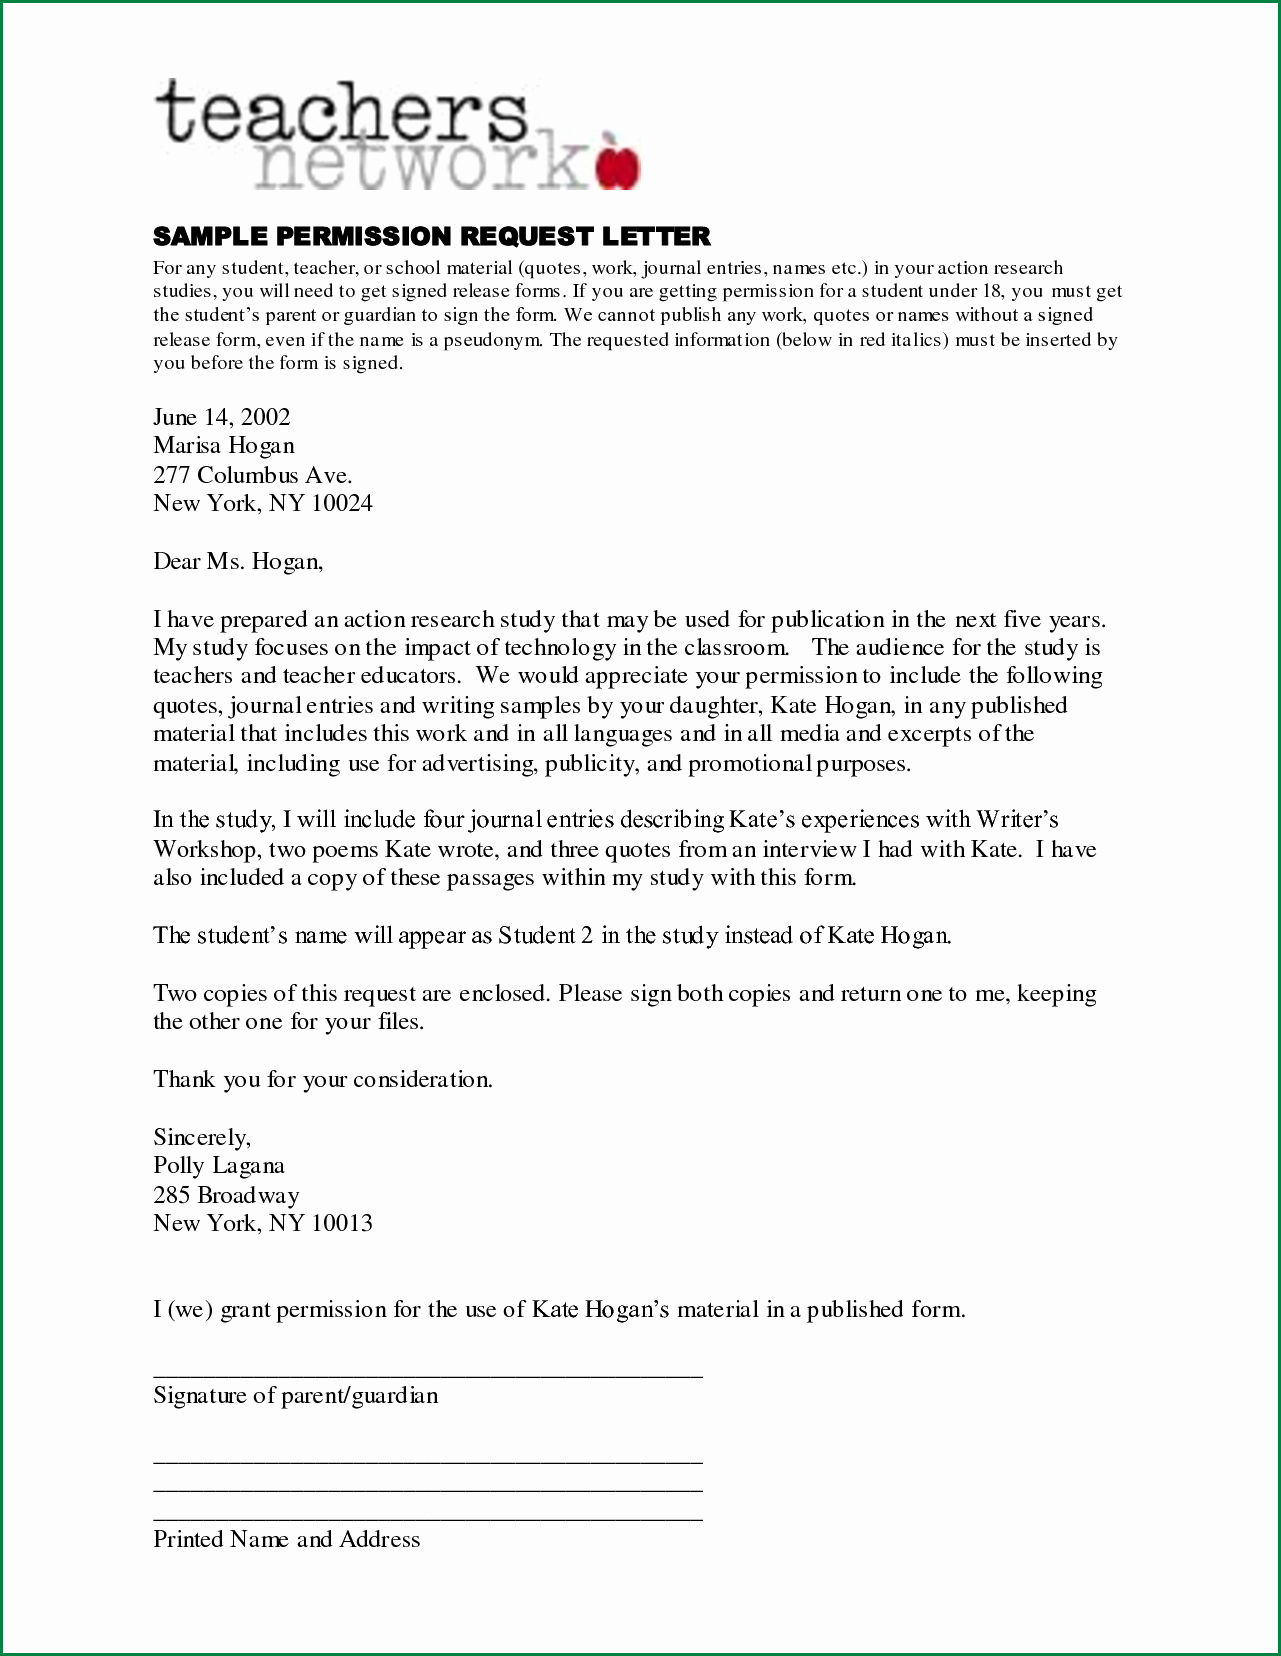 Application for A Teacher Job Fresh Application Letter for the Teacher Job Essays On Risk